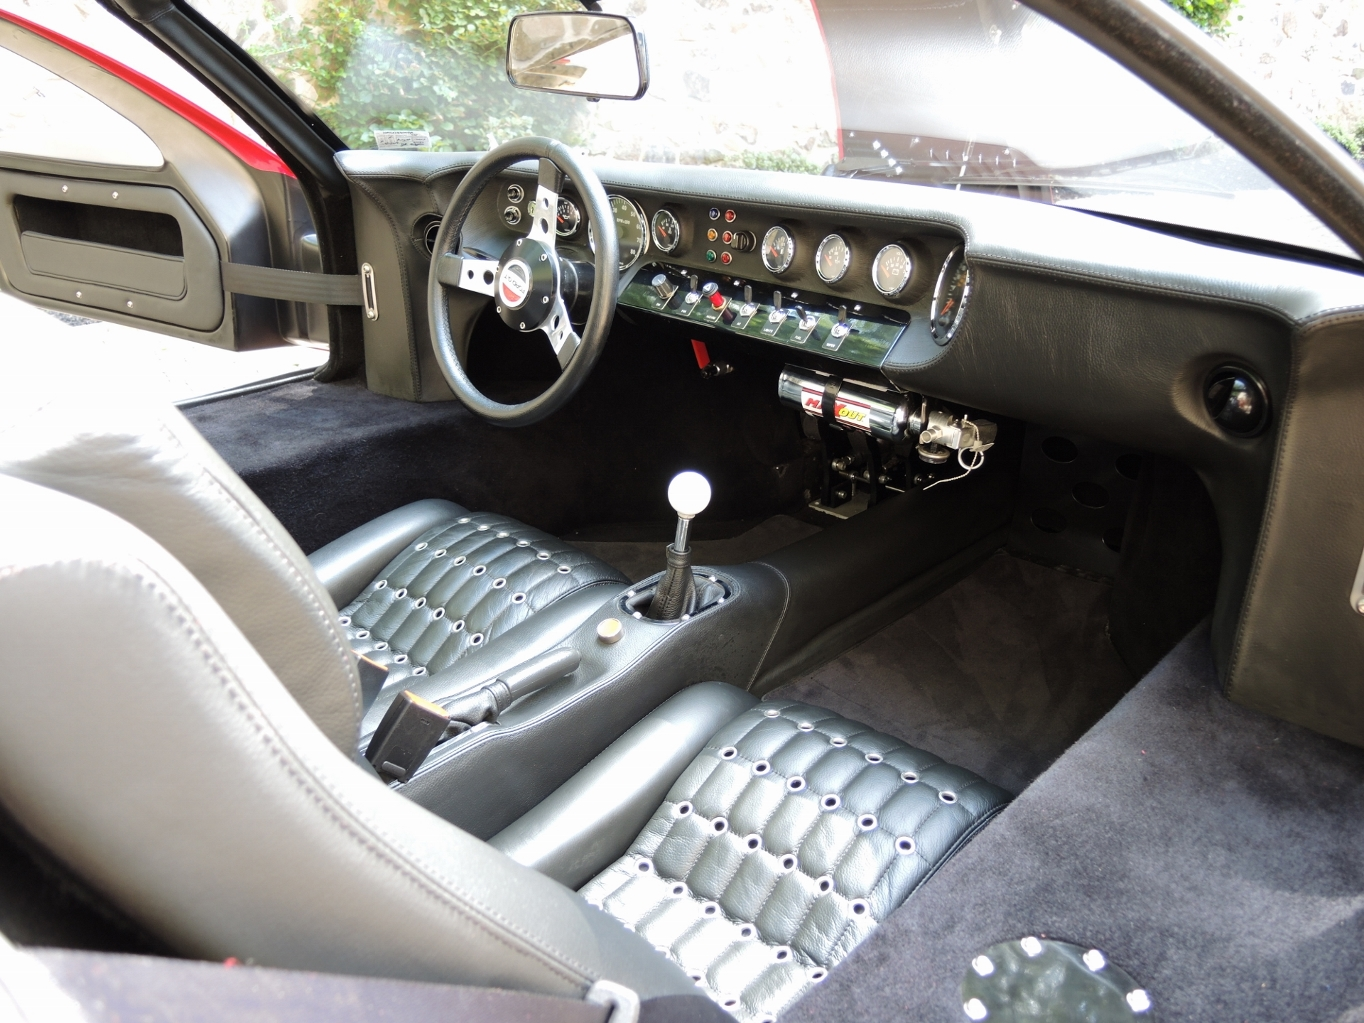 1966 CAV GT For Sale **SOLD**-interior-2-1920x1440-1364x1023-jpg